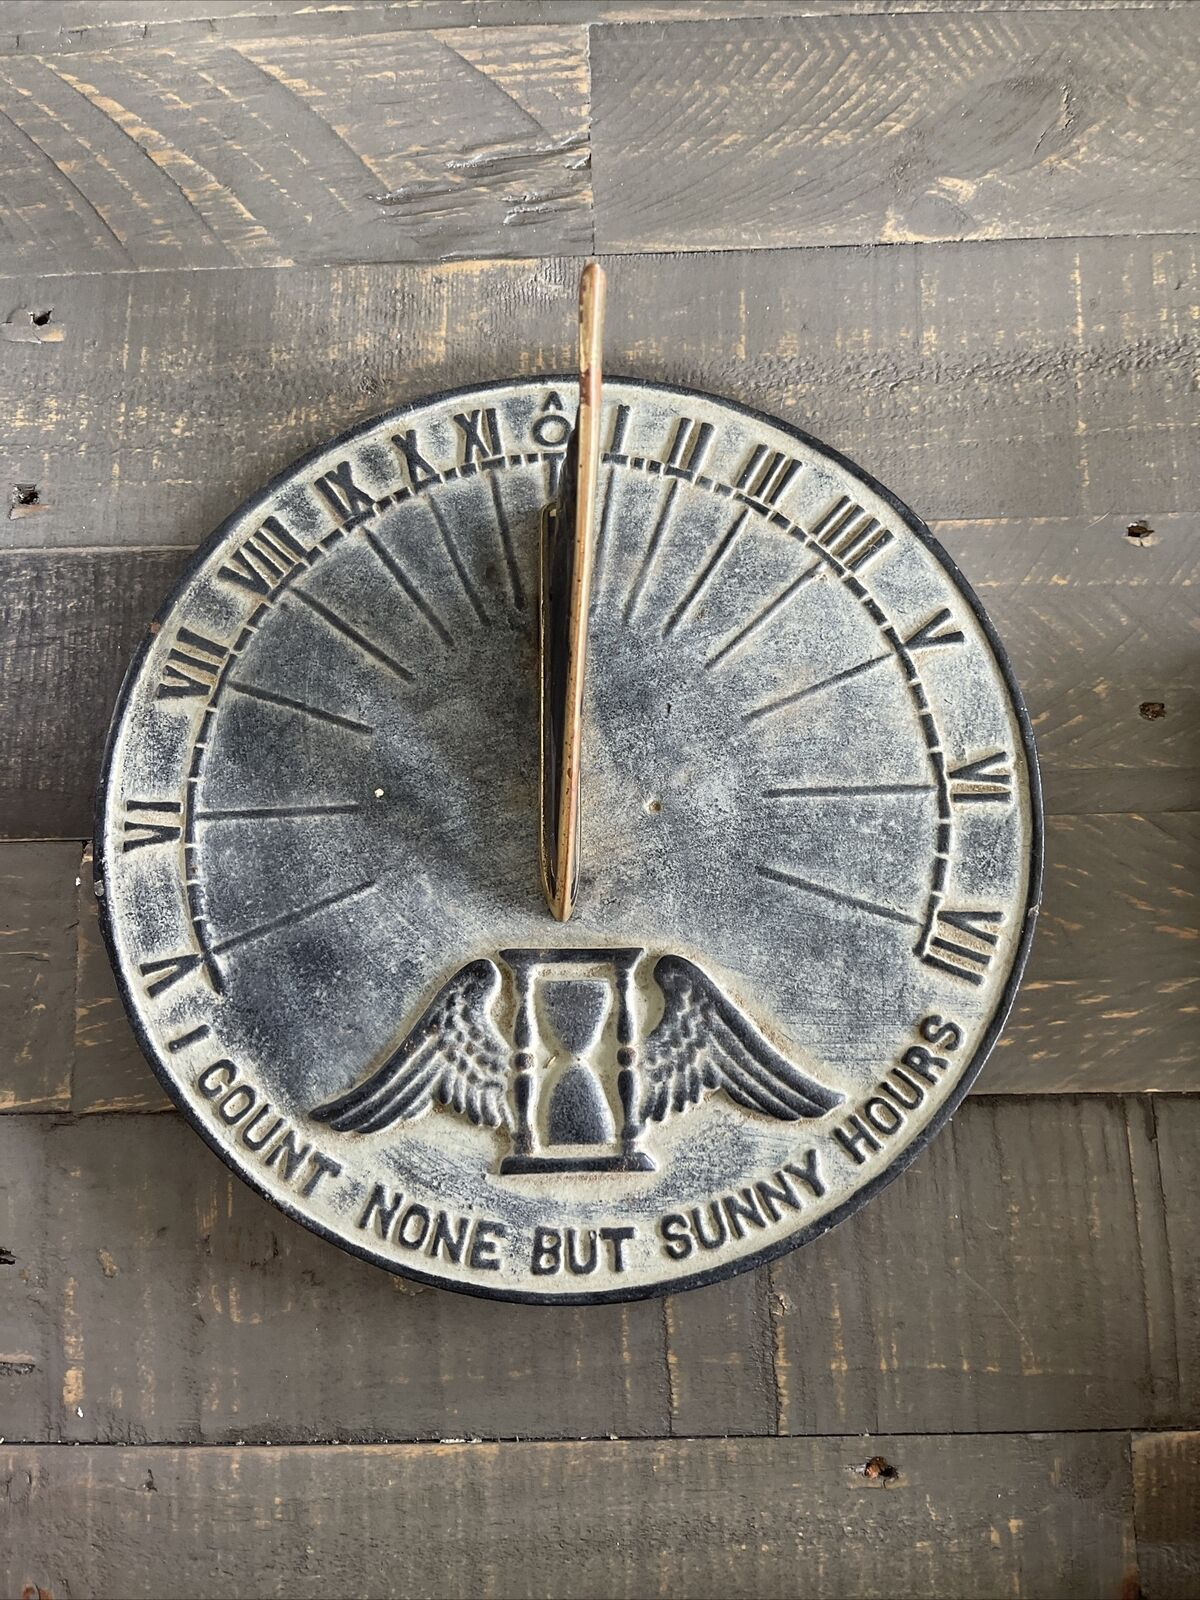 Virginia Metal Crafters CAST IRON SUN DIAL 23-2 I Count None But Sunny Hours